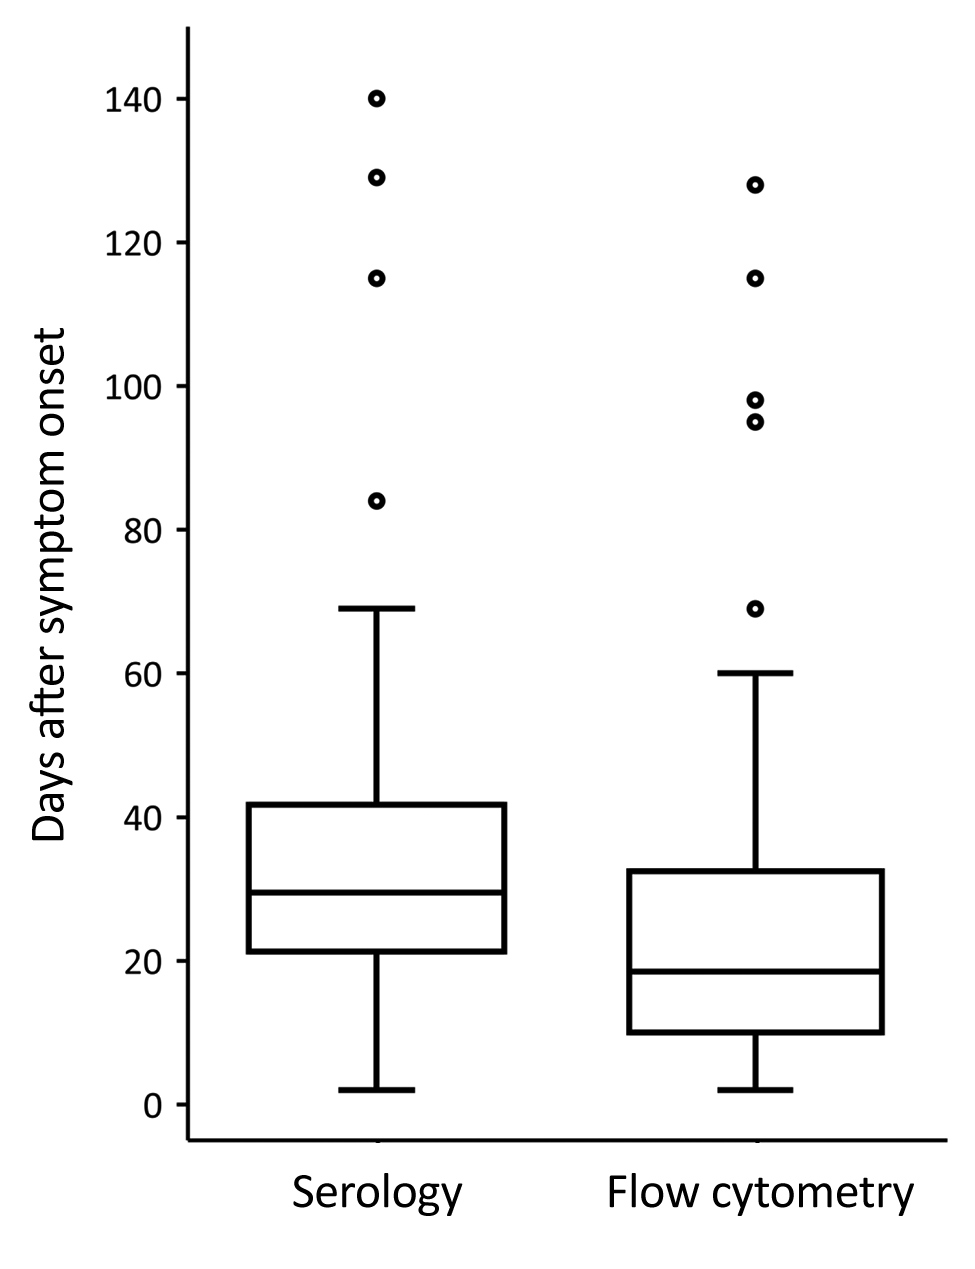 Comparison of time to first positive serologic test result for tularemia and time to raised CD3+/CD4–/CD8– T-cell percentage determined by flow cytometry relative to the time of symptom onset of 58 patients with probable or confirmed tularemia, Czech Republic, 2003–2015. Percentages of CD3+/CD4–/CD8– T cells >8% were considered raised. A positive serologic test result for tularemia was defined for probable cases as an antibody titer of >1:20 in any acute phase blood sample and for confirme